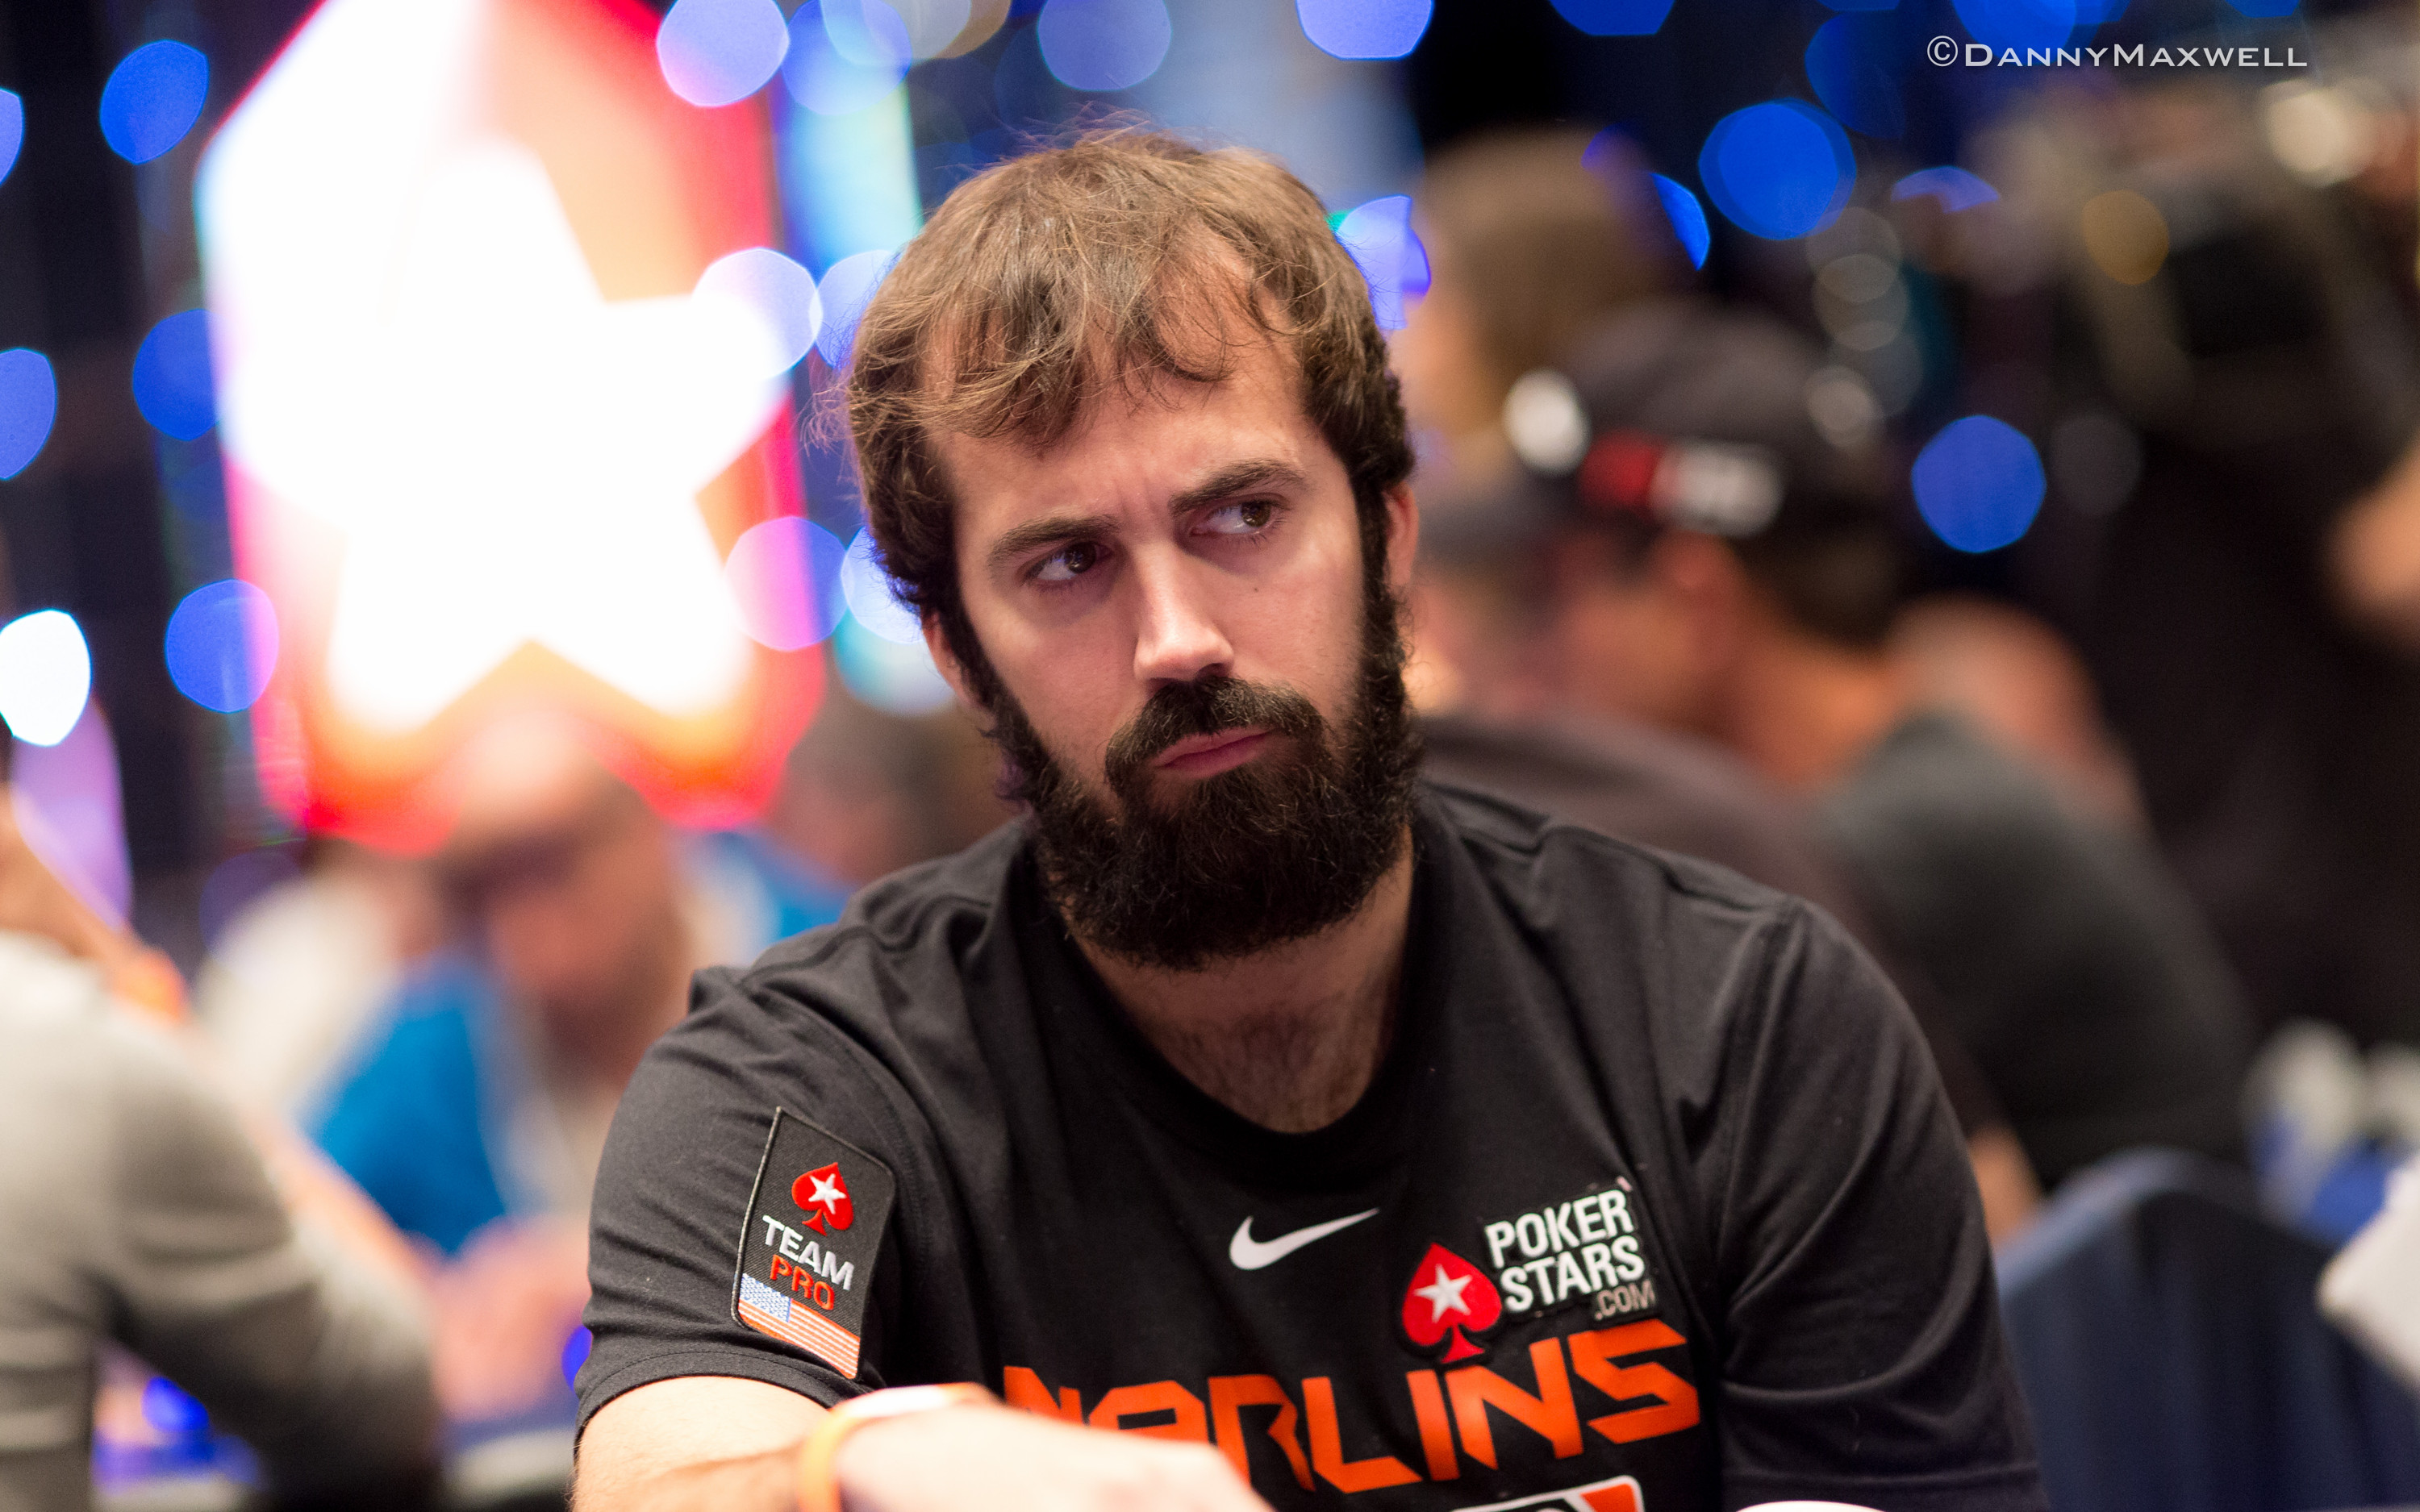 Jason mercier high stakes poker valise a roulette gifi